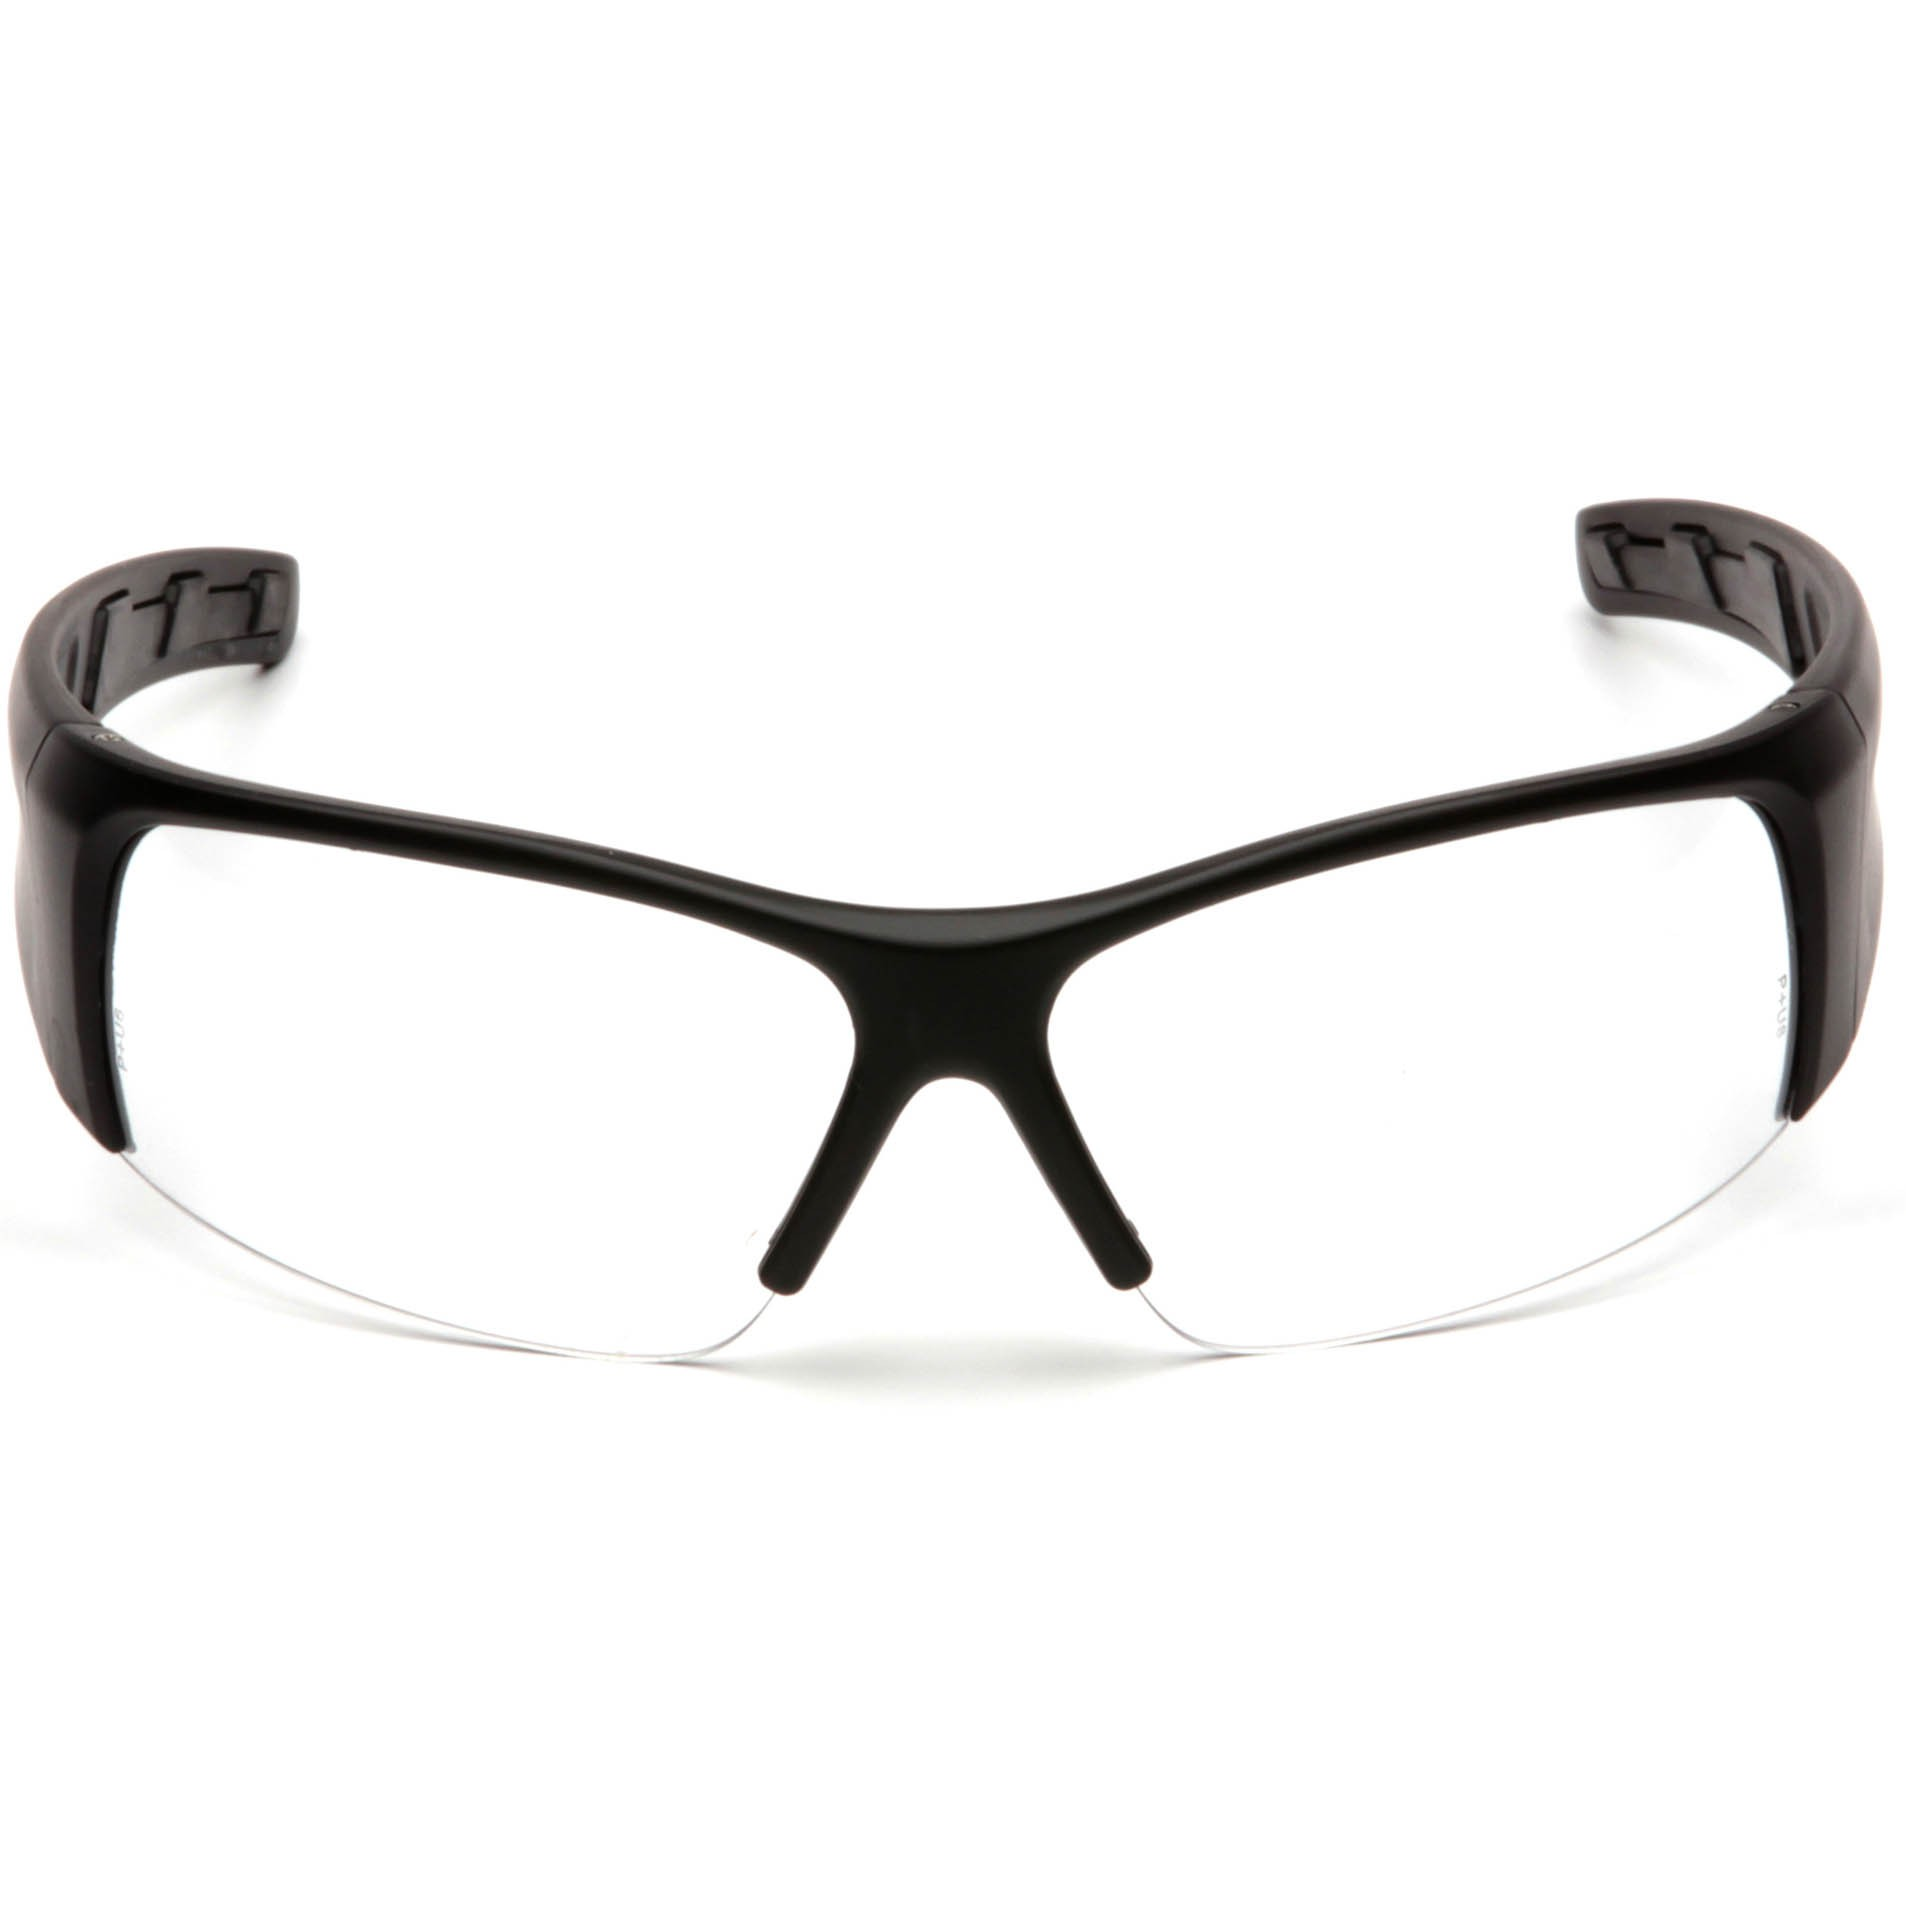 Safety Glasses Black Frame : Pyramex PMXTORQ Safety Glasses - Black Frame - Clear Lens ...